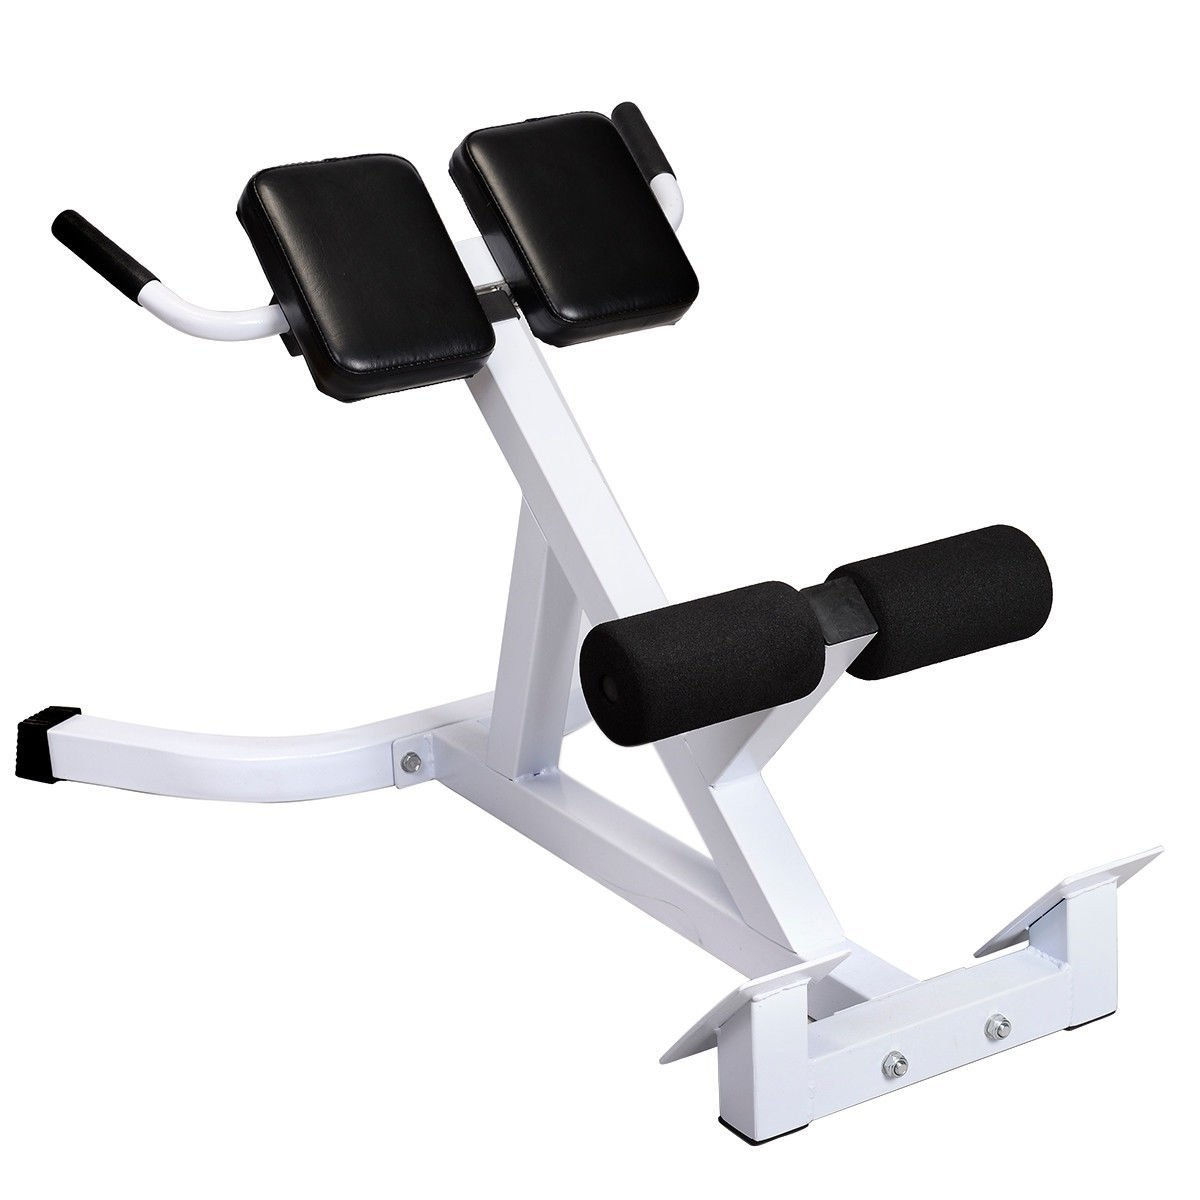 Hyper Extension Hyperextension Back Exercise AB Bench Gym...